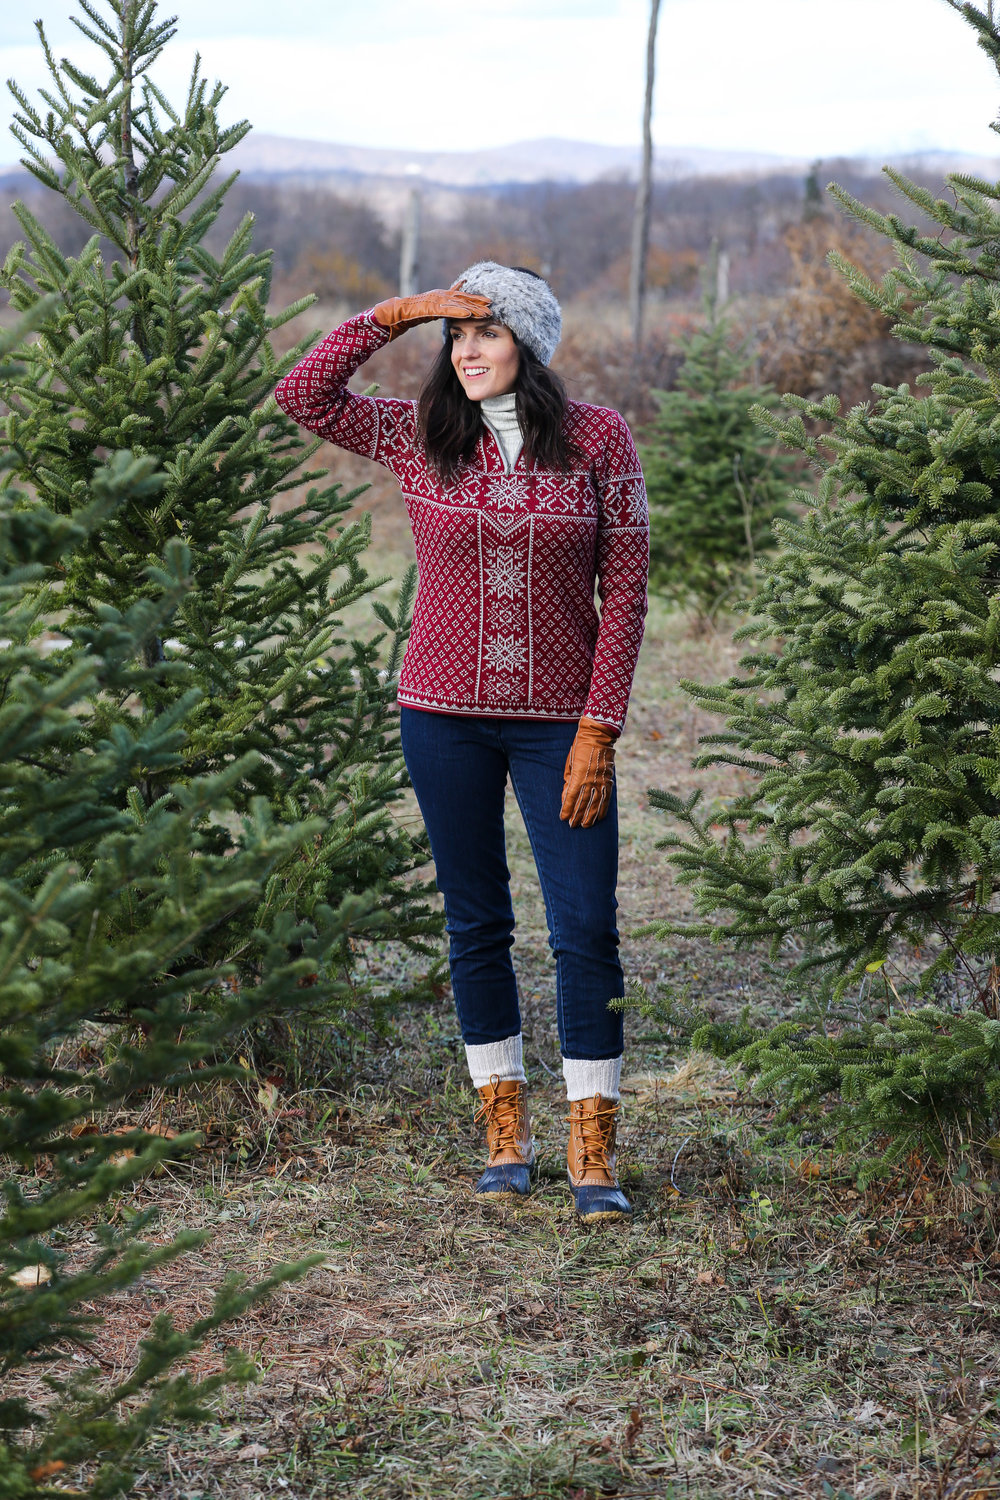 christmas-tree-cutting-outfit6.jpg